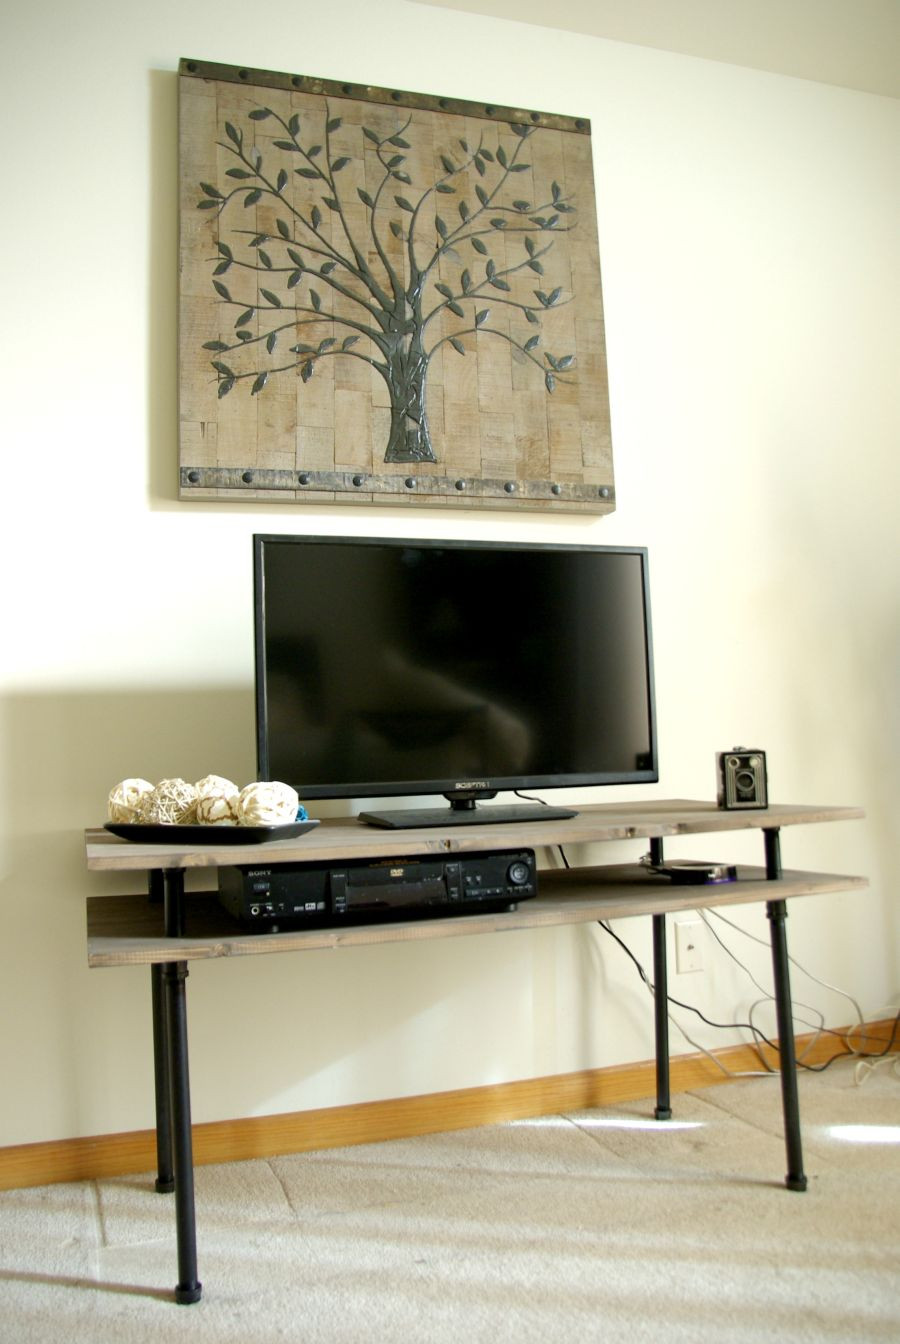 Best ideas about DIY Pipe Tv Stand . Save or Pin 13 DIY Plans for Building a TV Stand Now.